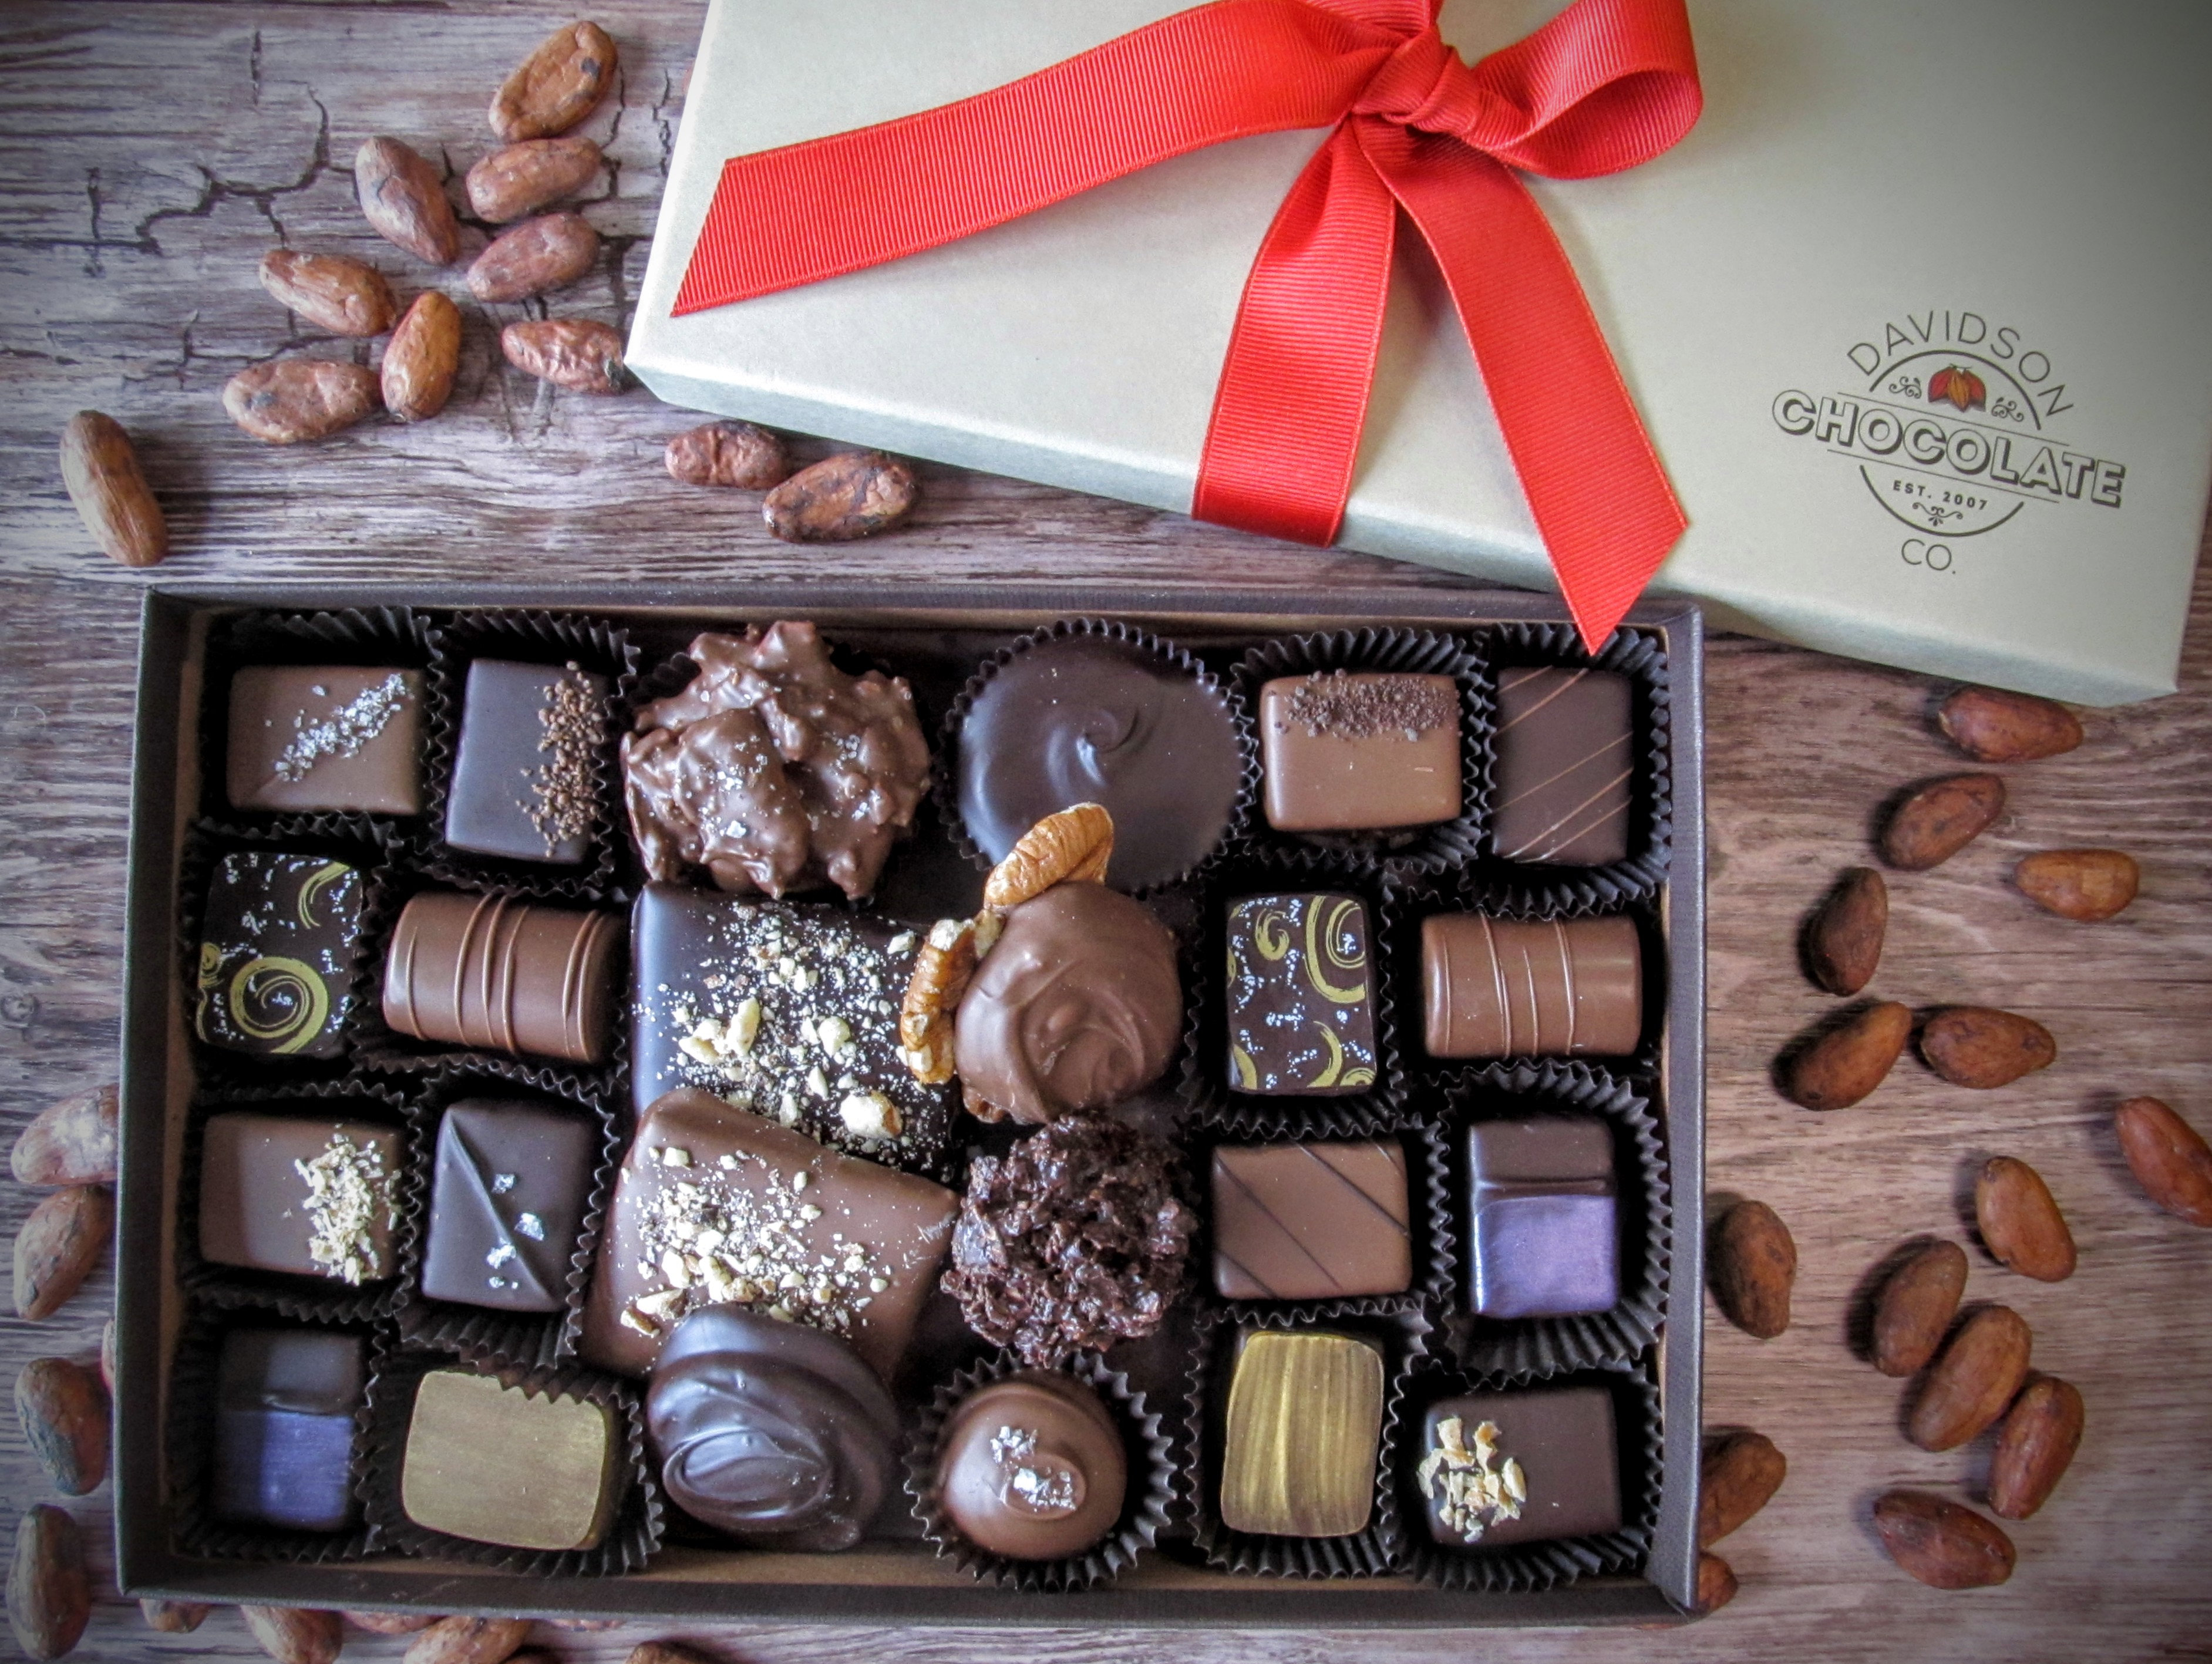 Signature Truffles & Confections Collection - 1 Pound